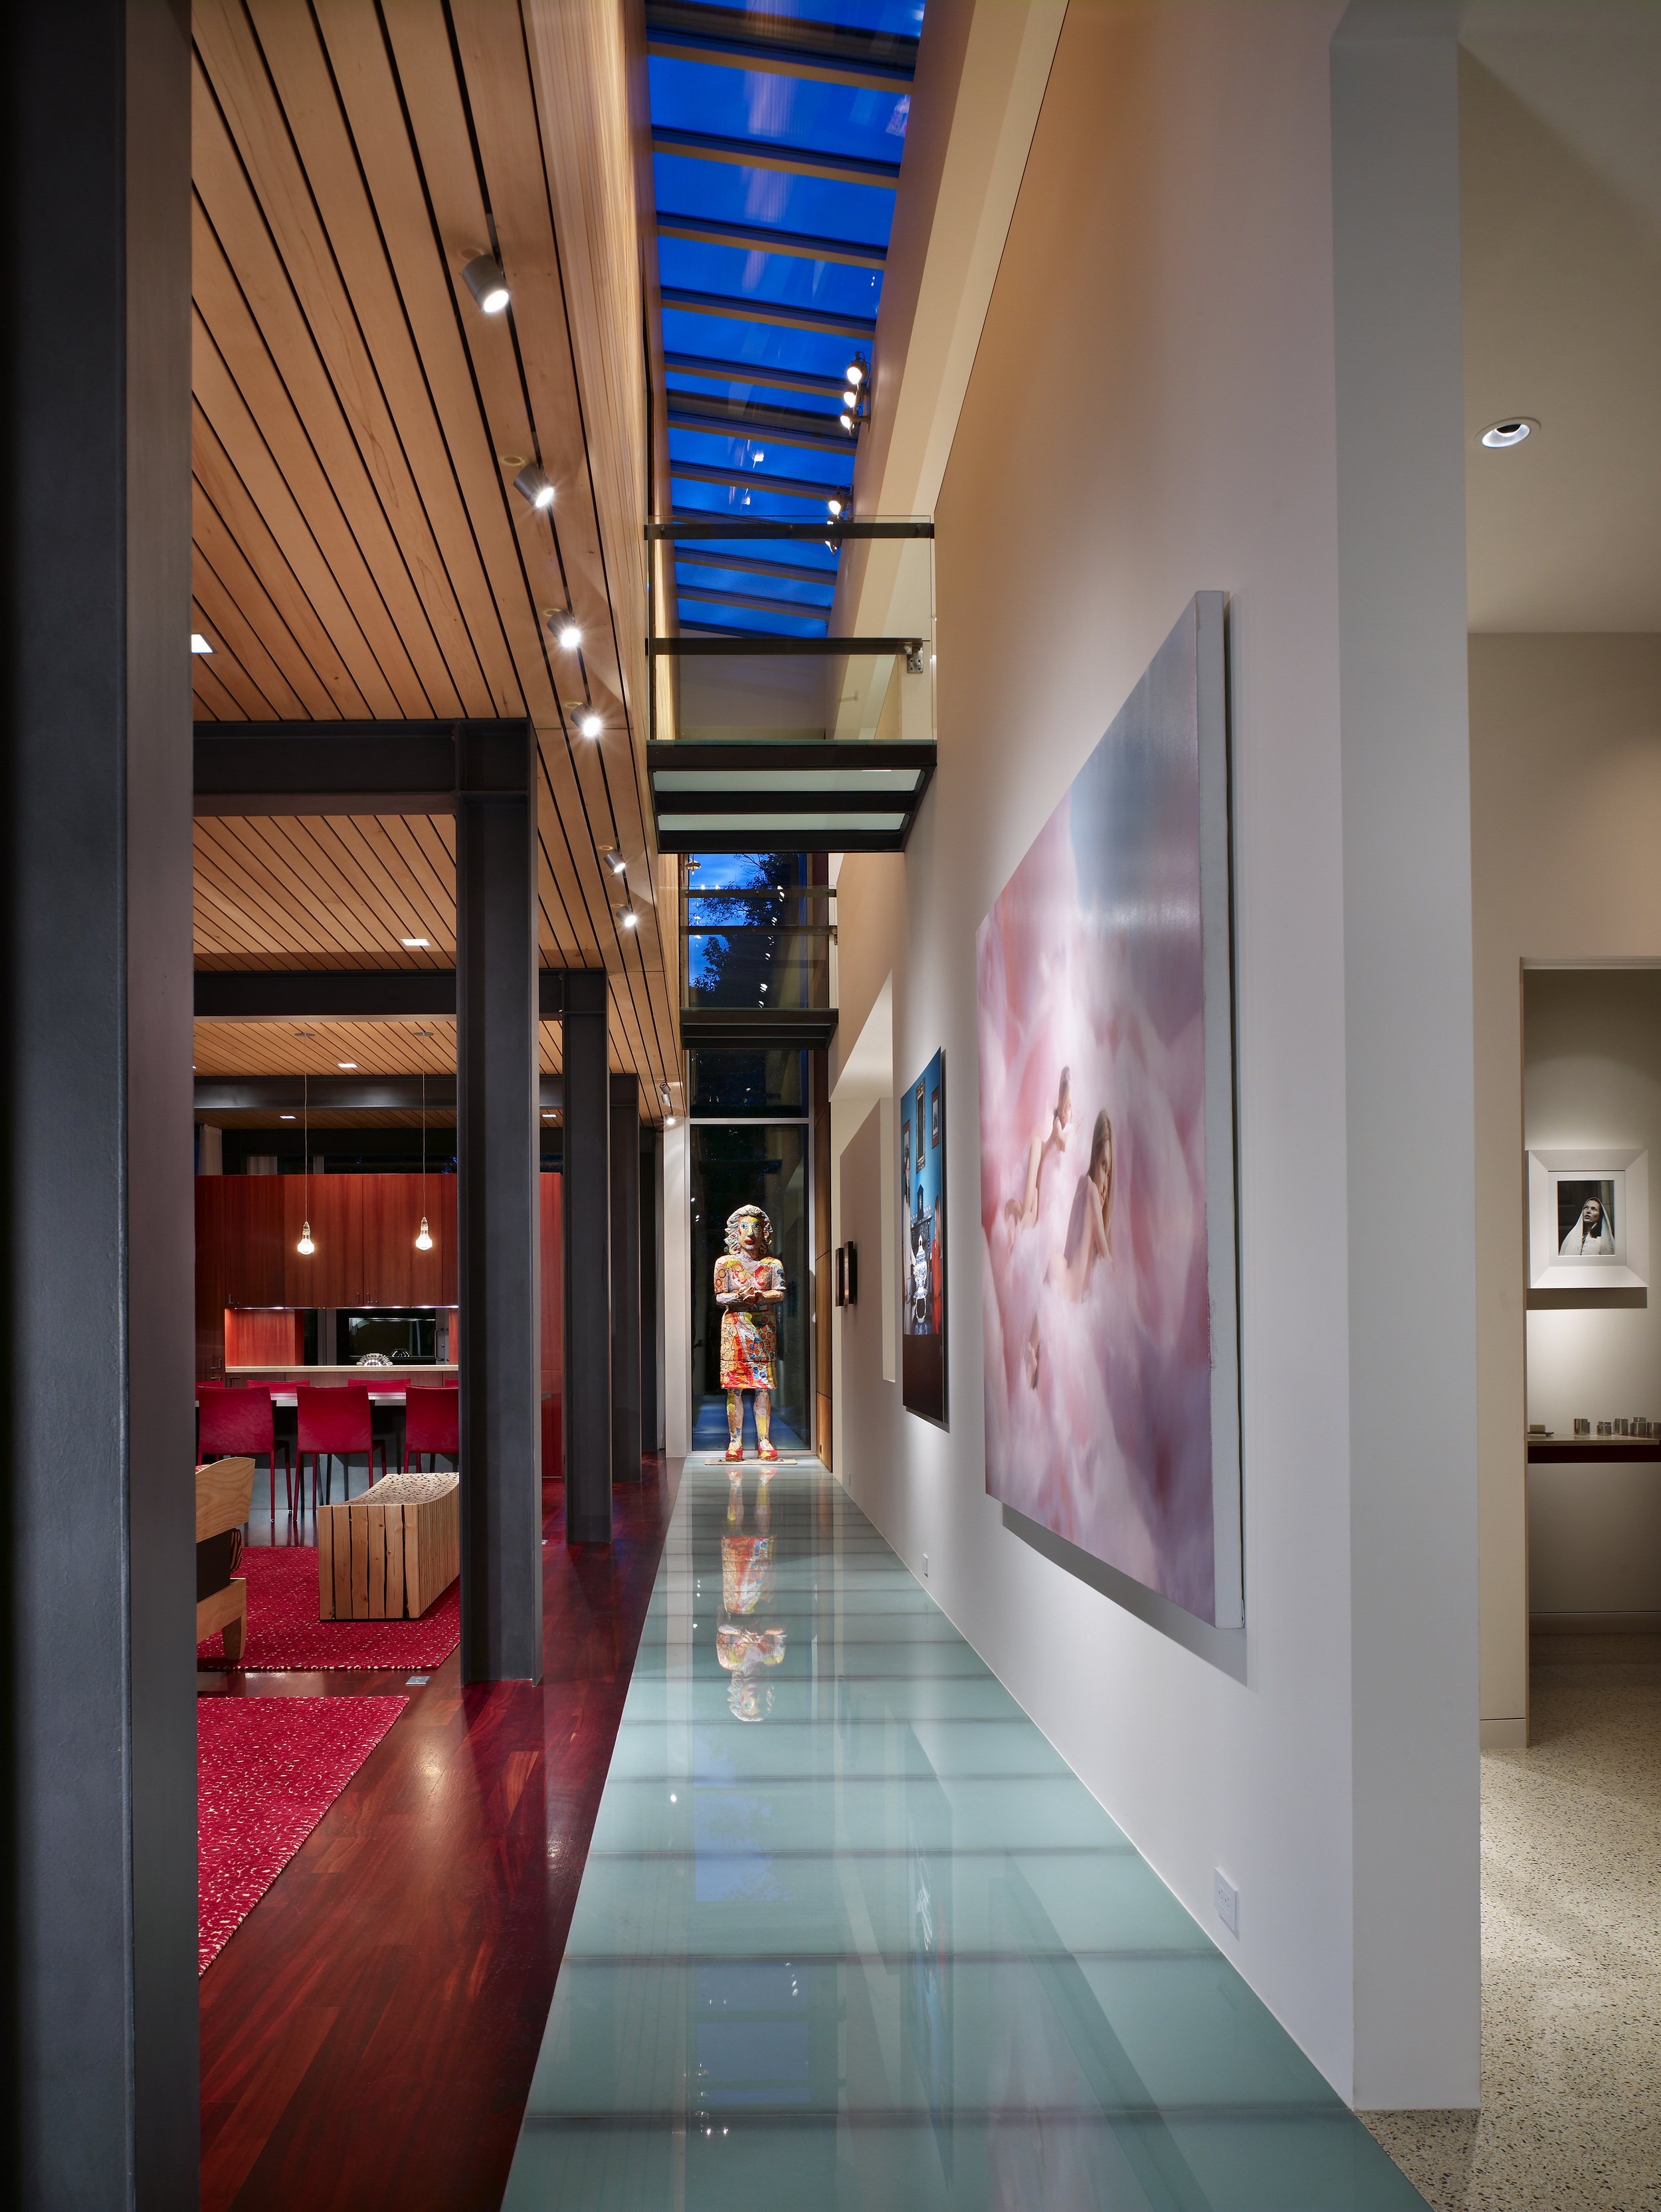 In collaboration with the architects, we up-lit the glass floor from the media room below, and recessed the gallery track above removable ceiling planks.